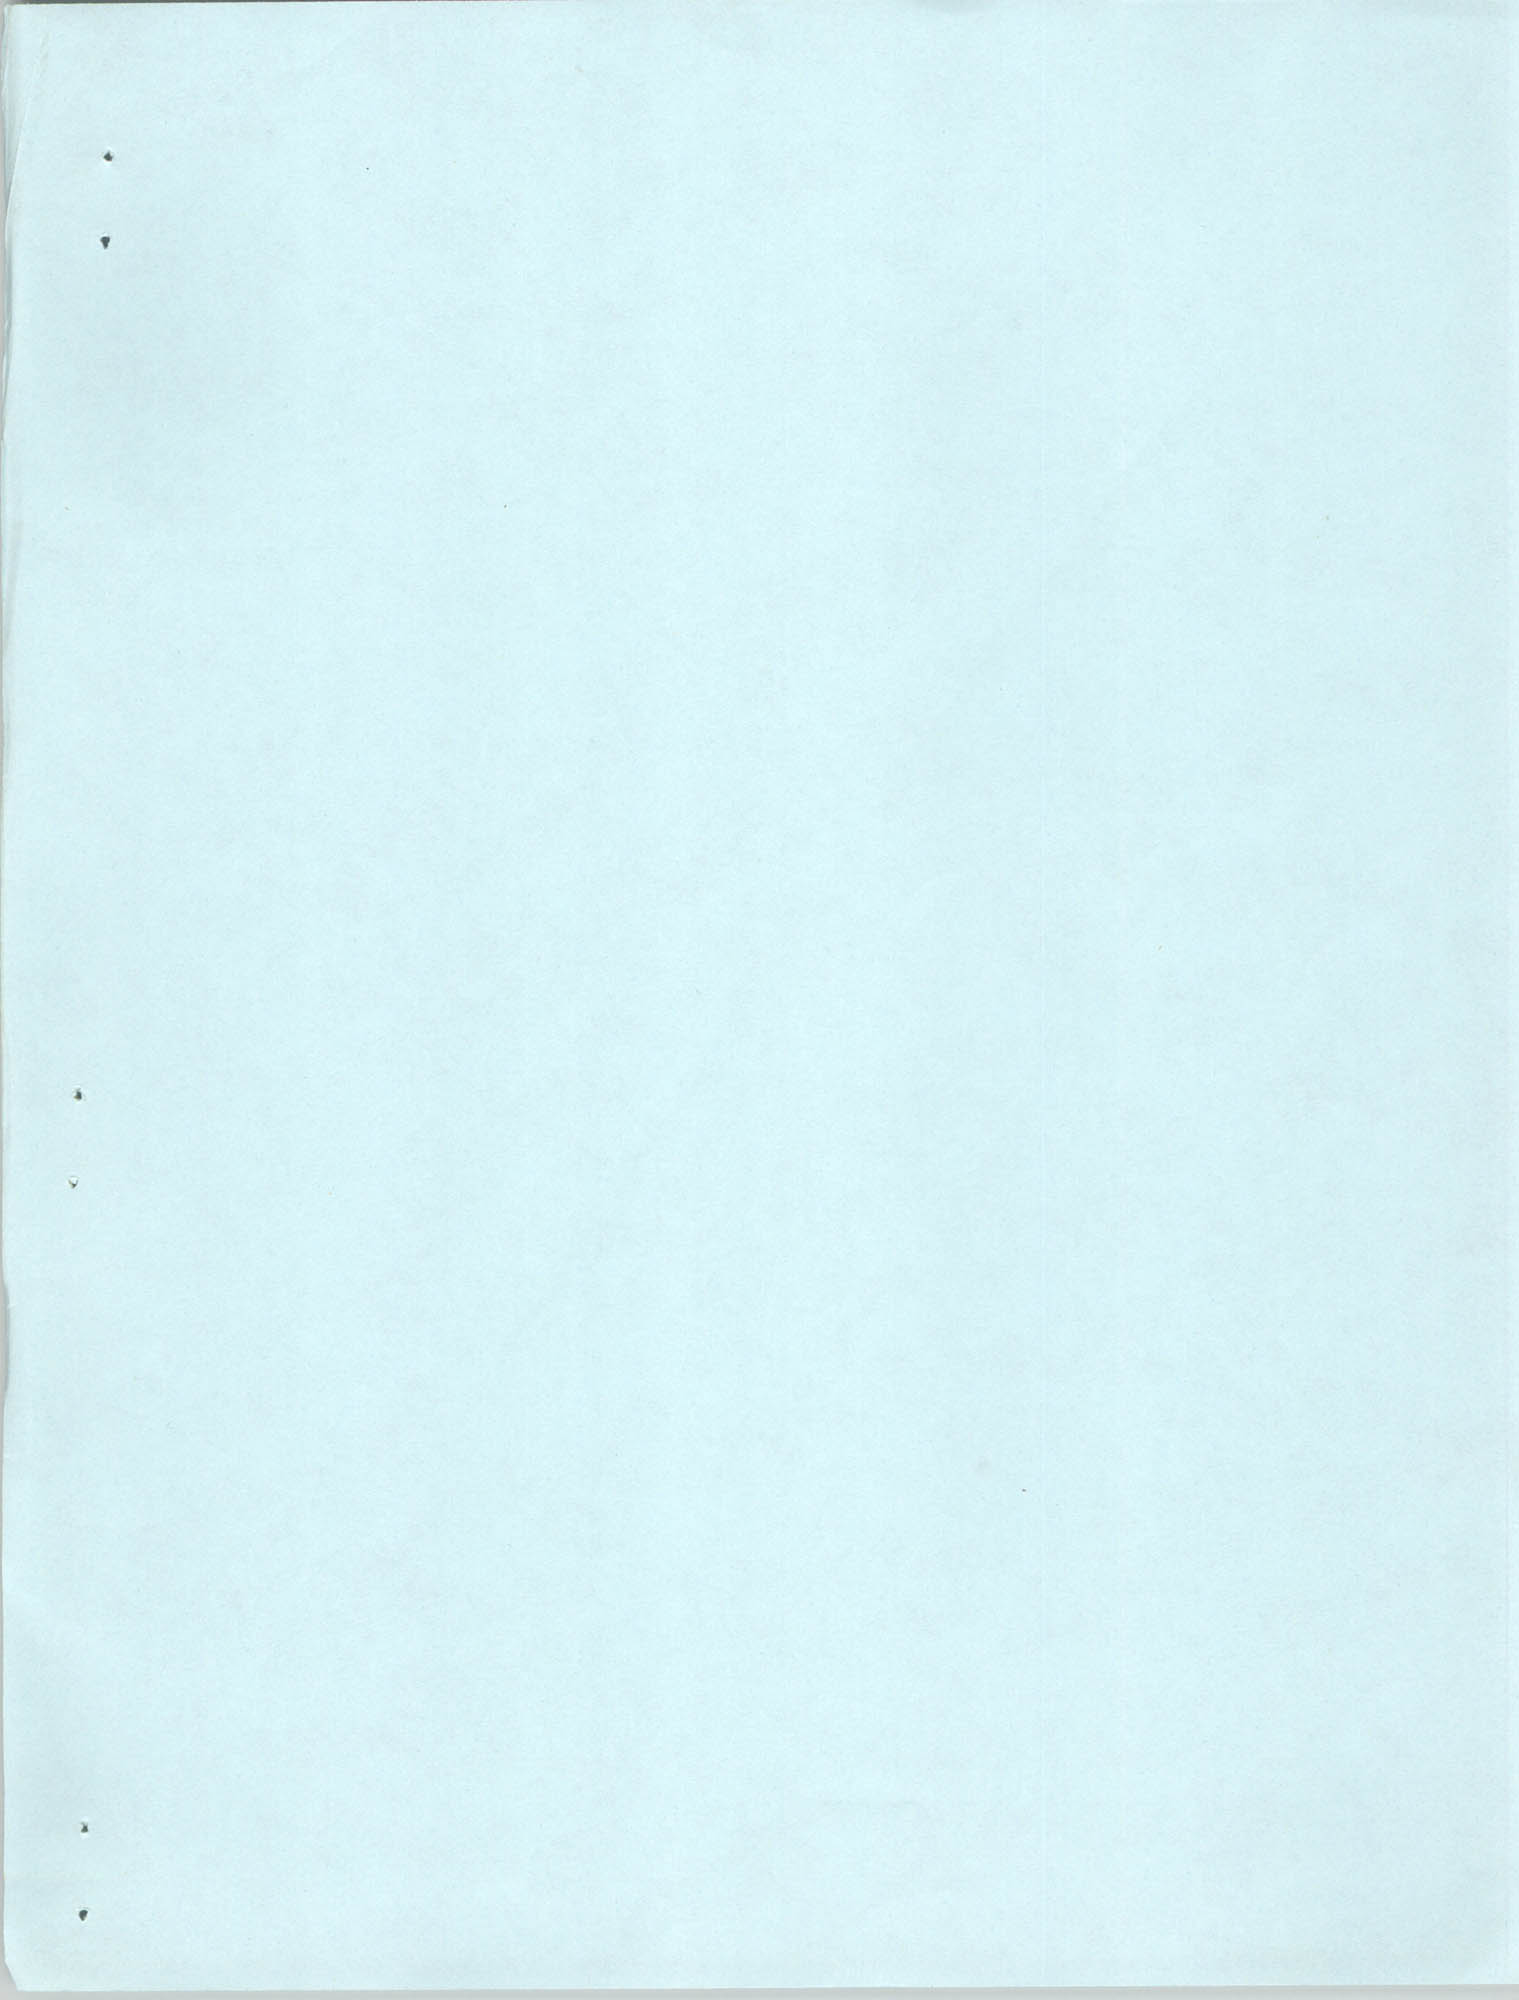 South Carolina Conference of Branches of the NAACP, 1990 Annual Report, Part Two, Back Cover